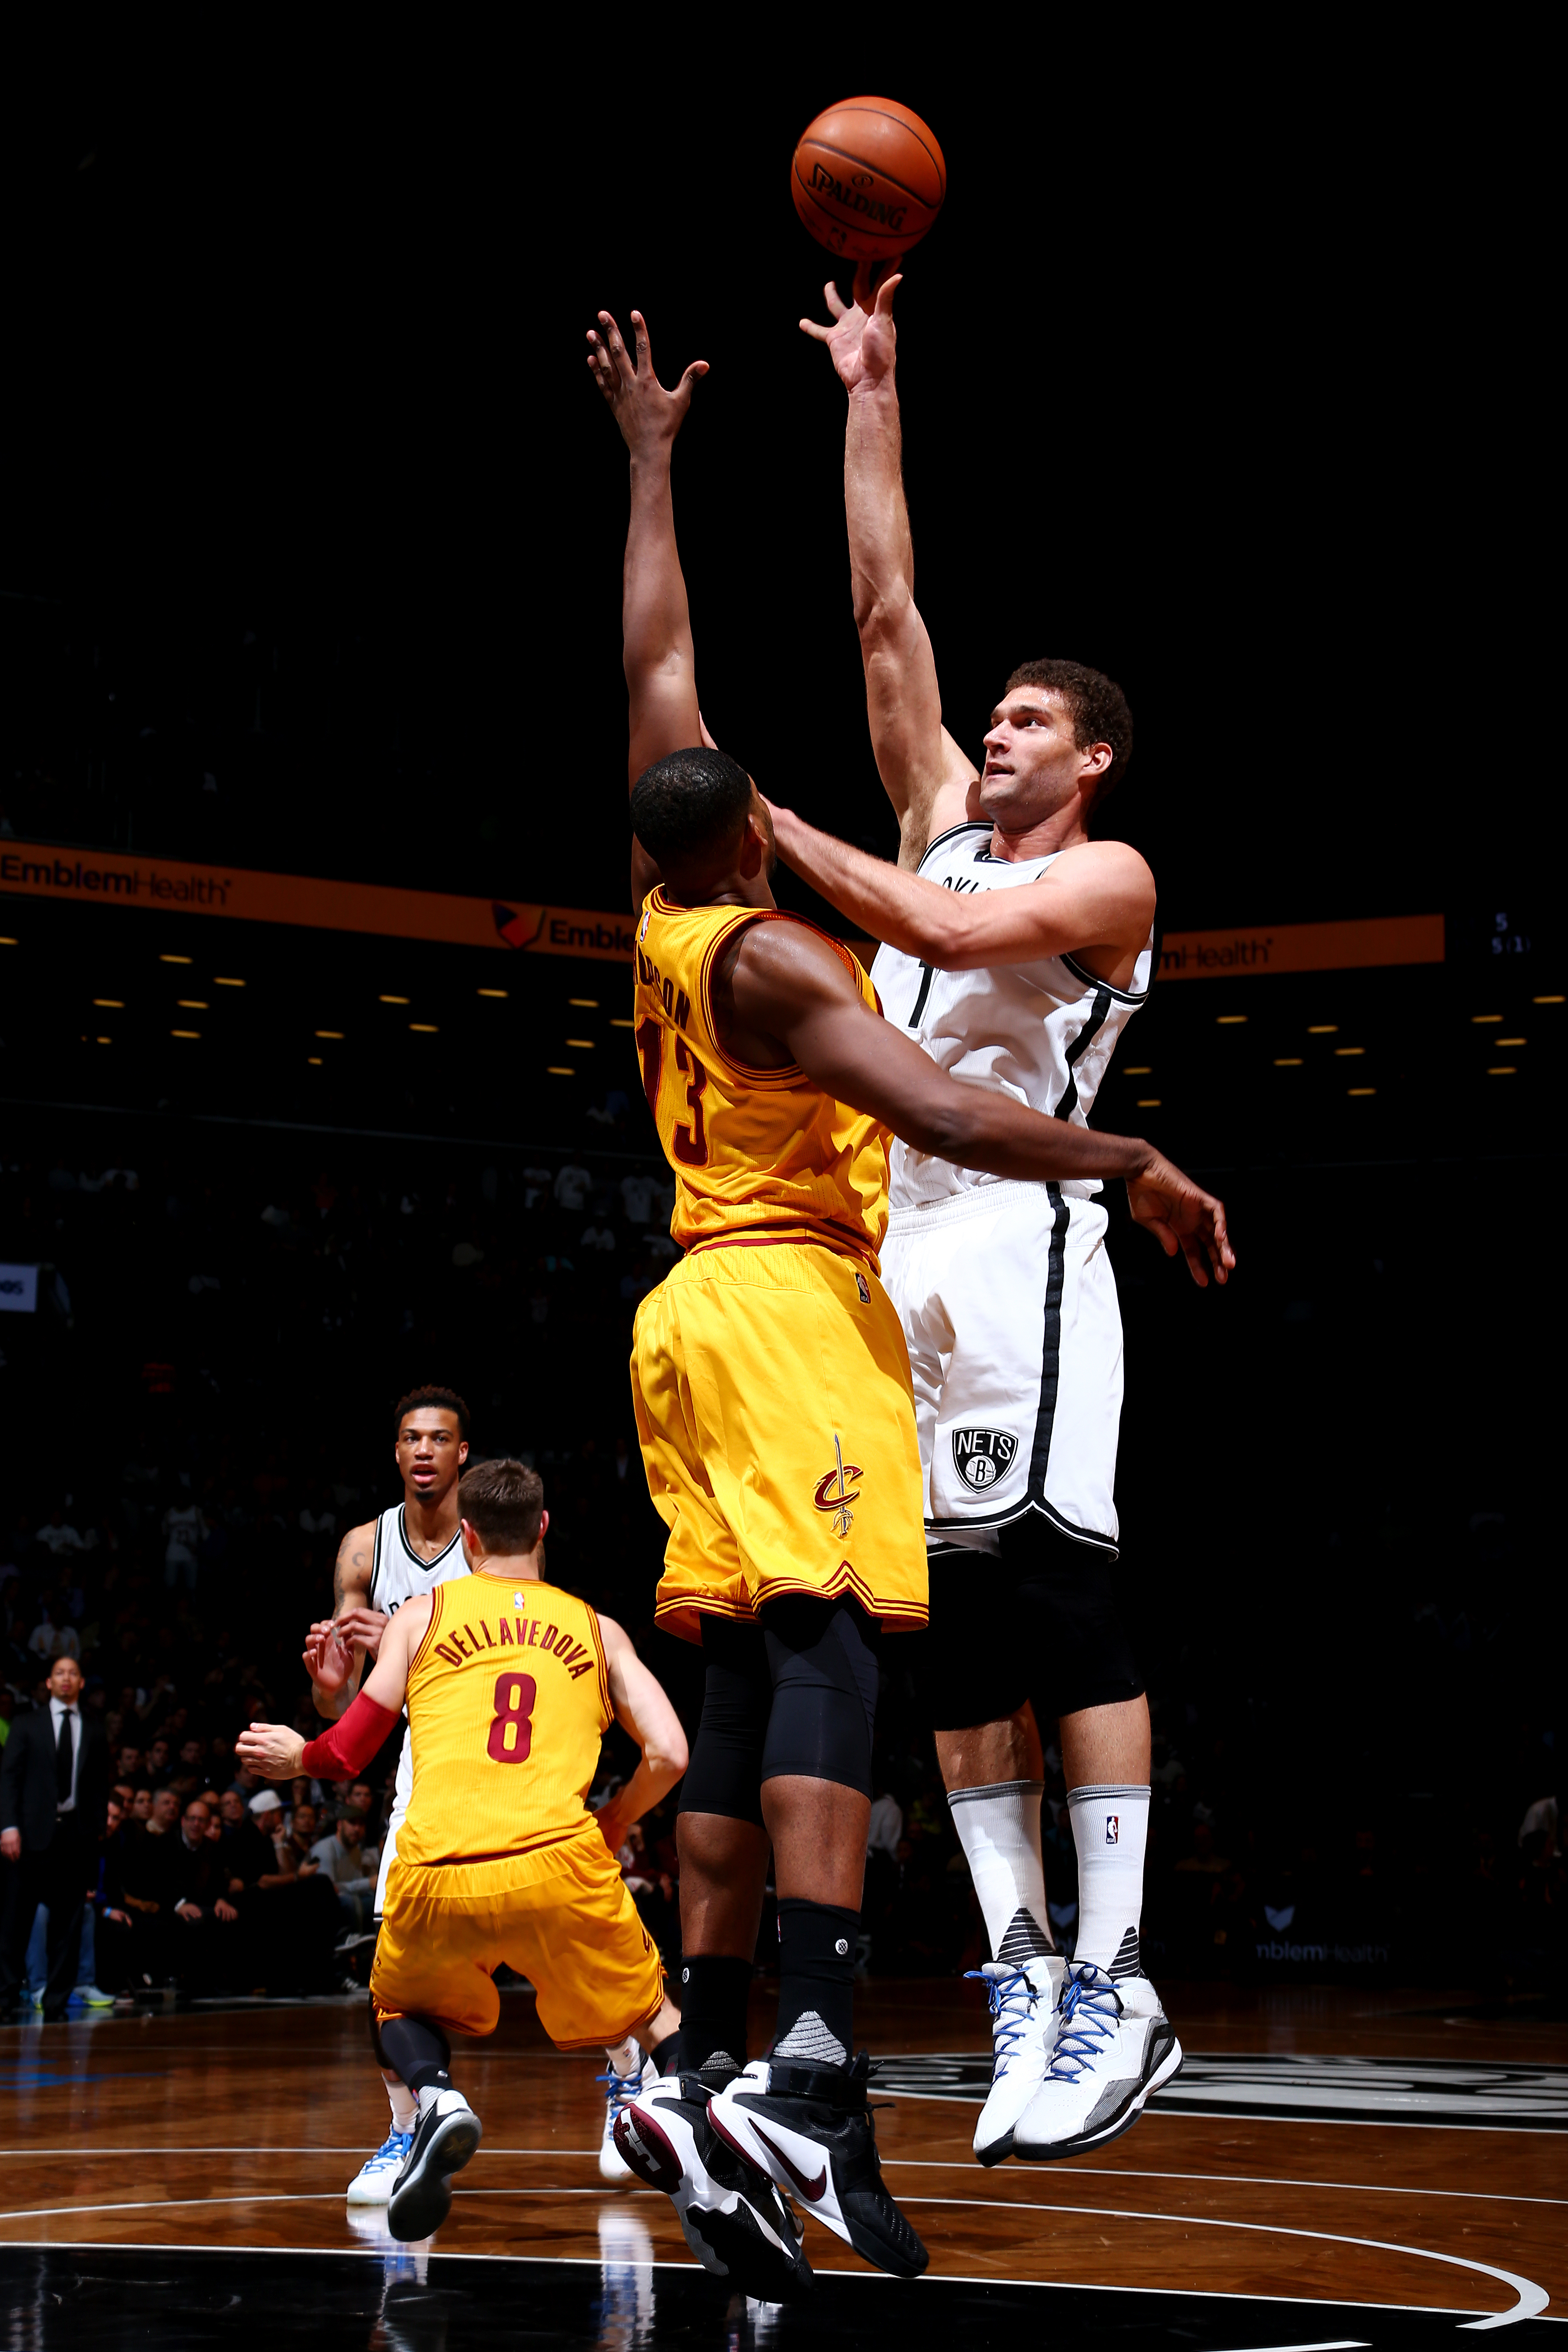 BROOKLYN, NY  - MARCH 24: Brook Lopez #11 of the Brooklyn Nets shoots against Tristan Thompson #13 of the Cleveland Cavaliers during the game on March 24, 2016 at Barclays Center in Brooklyn, New York. (Photo by Nathaniel S. Butler/NBAE via Getty Images)